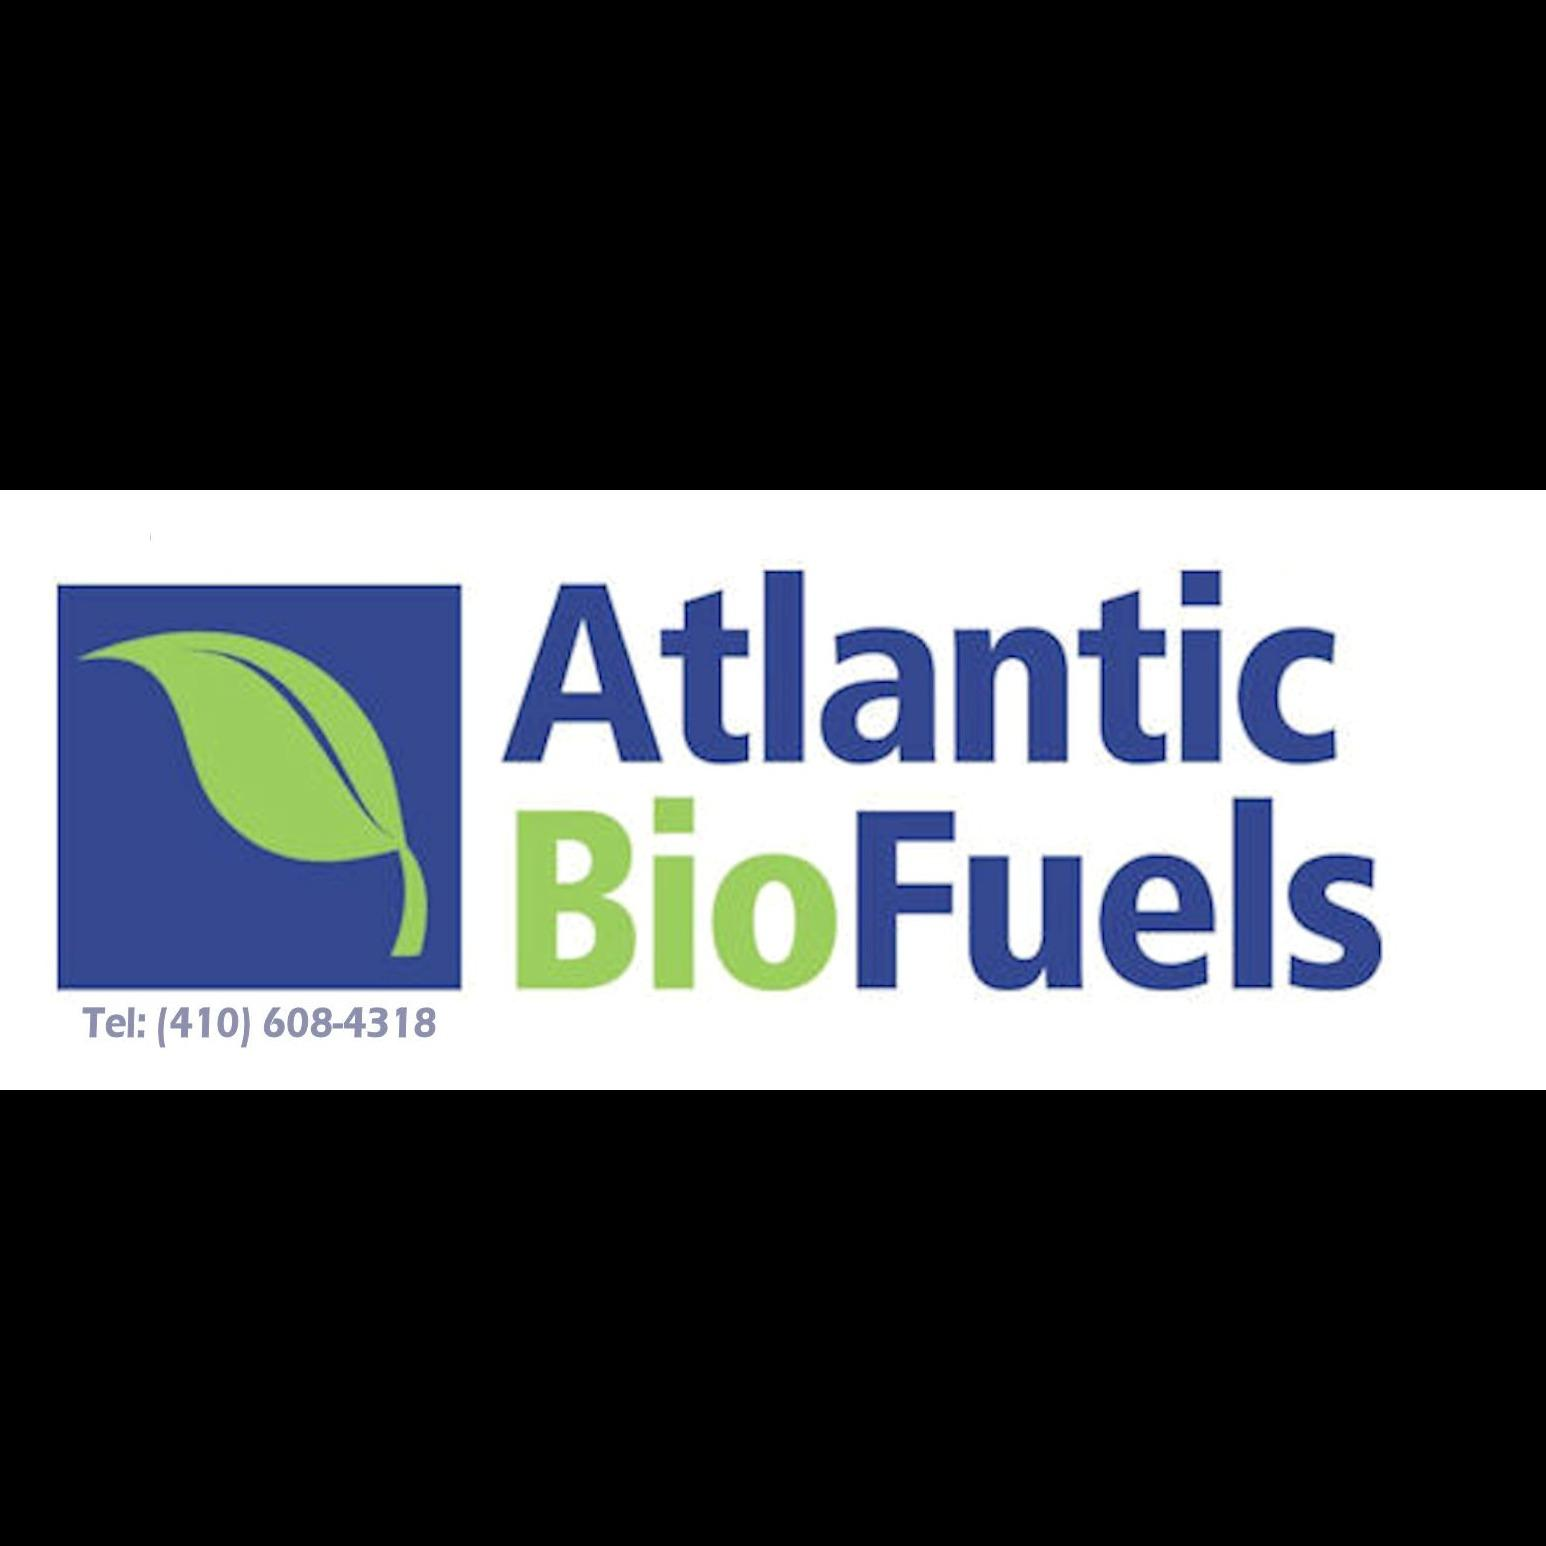 Oil Refinery in MD Baltimore 21226 Atlantic Biofuels 3550 Fairfield Rd  (410)608-4318